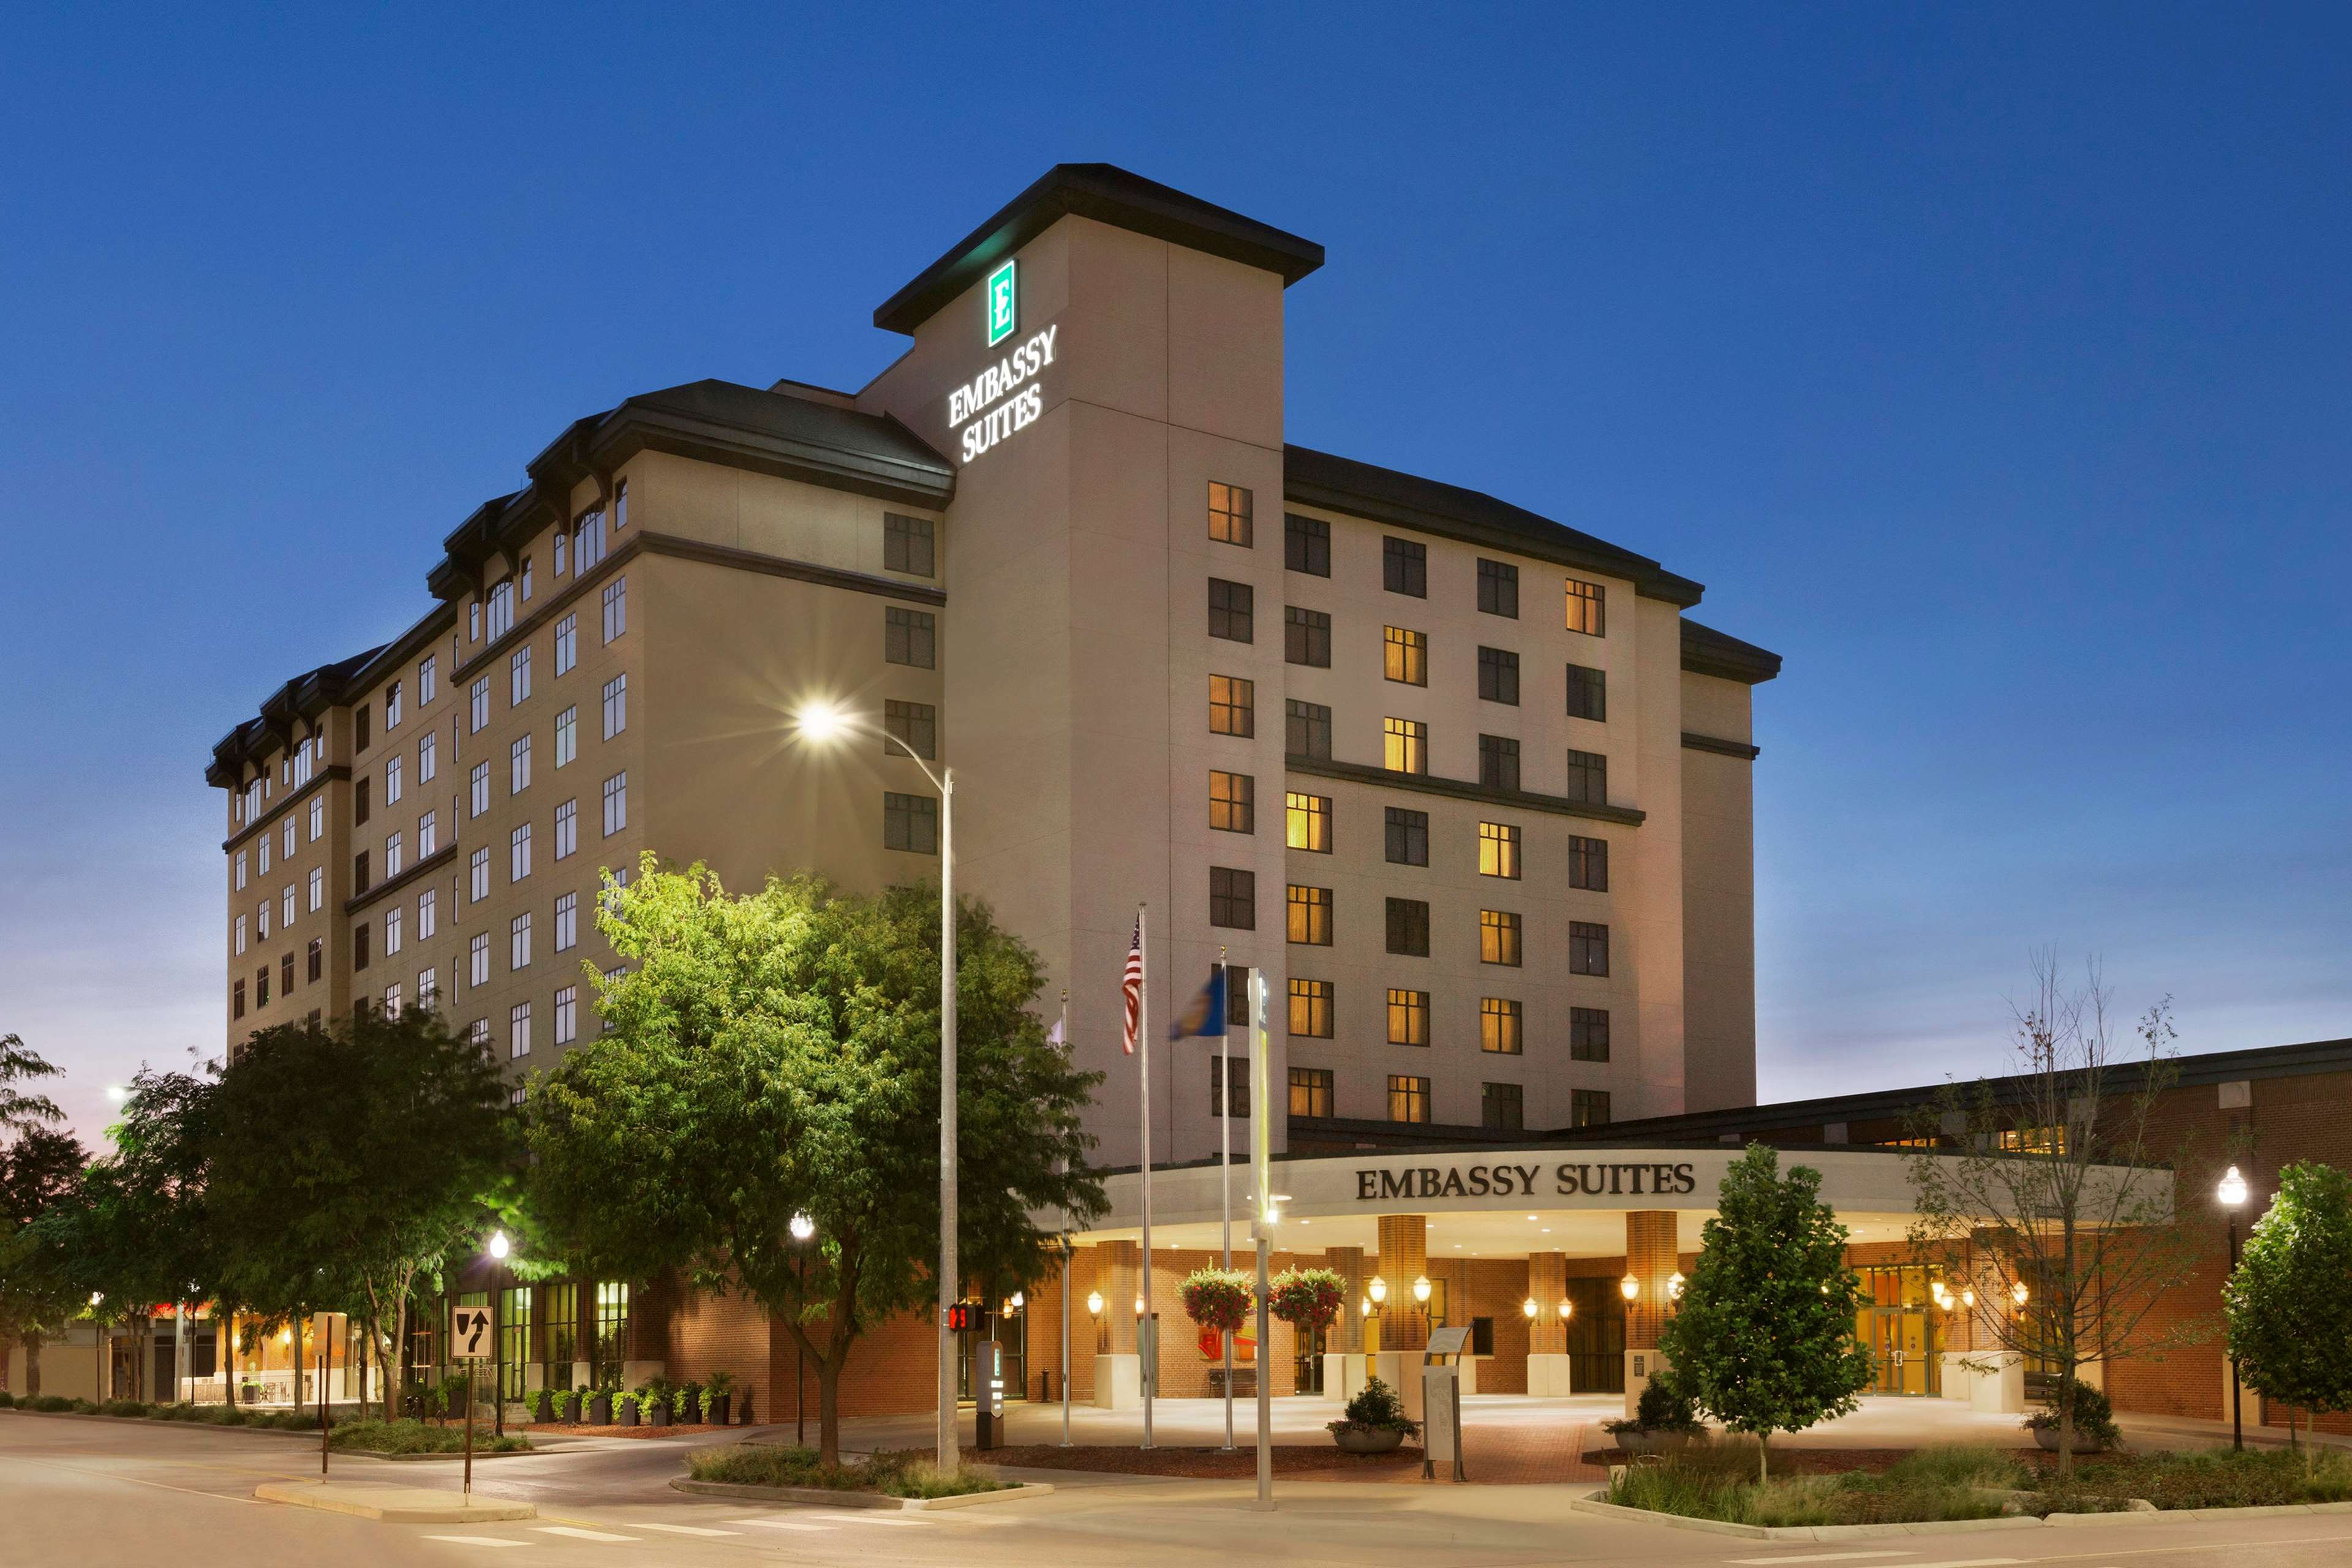 Embassy Suites By Hilton Lincoln In Lincoln Ne 68508